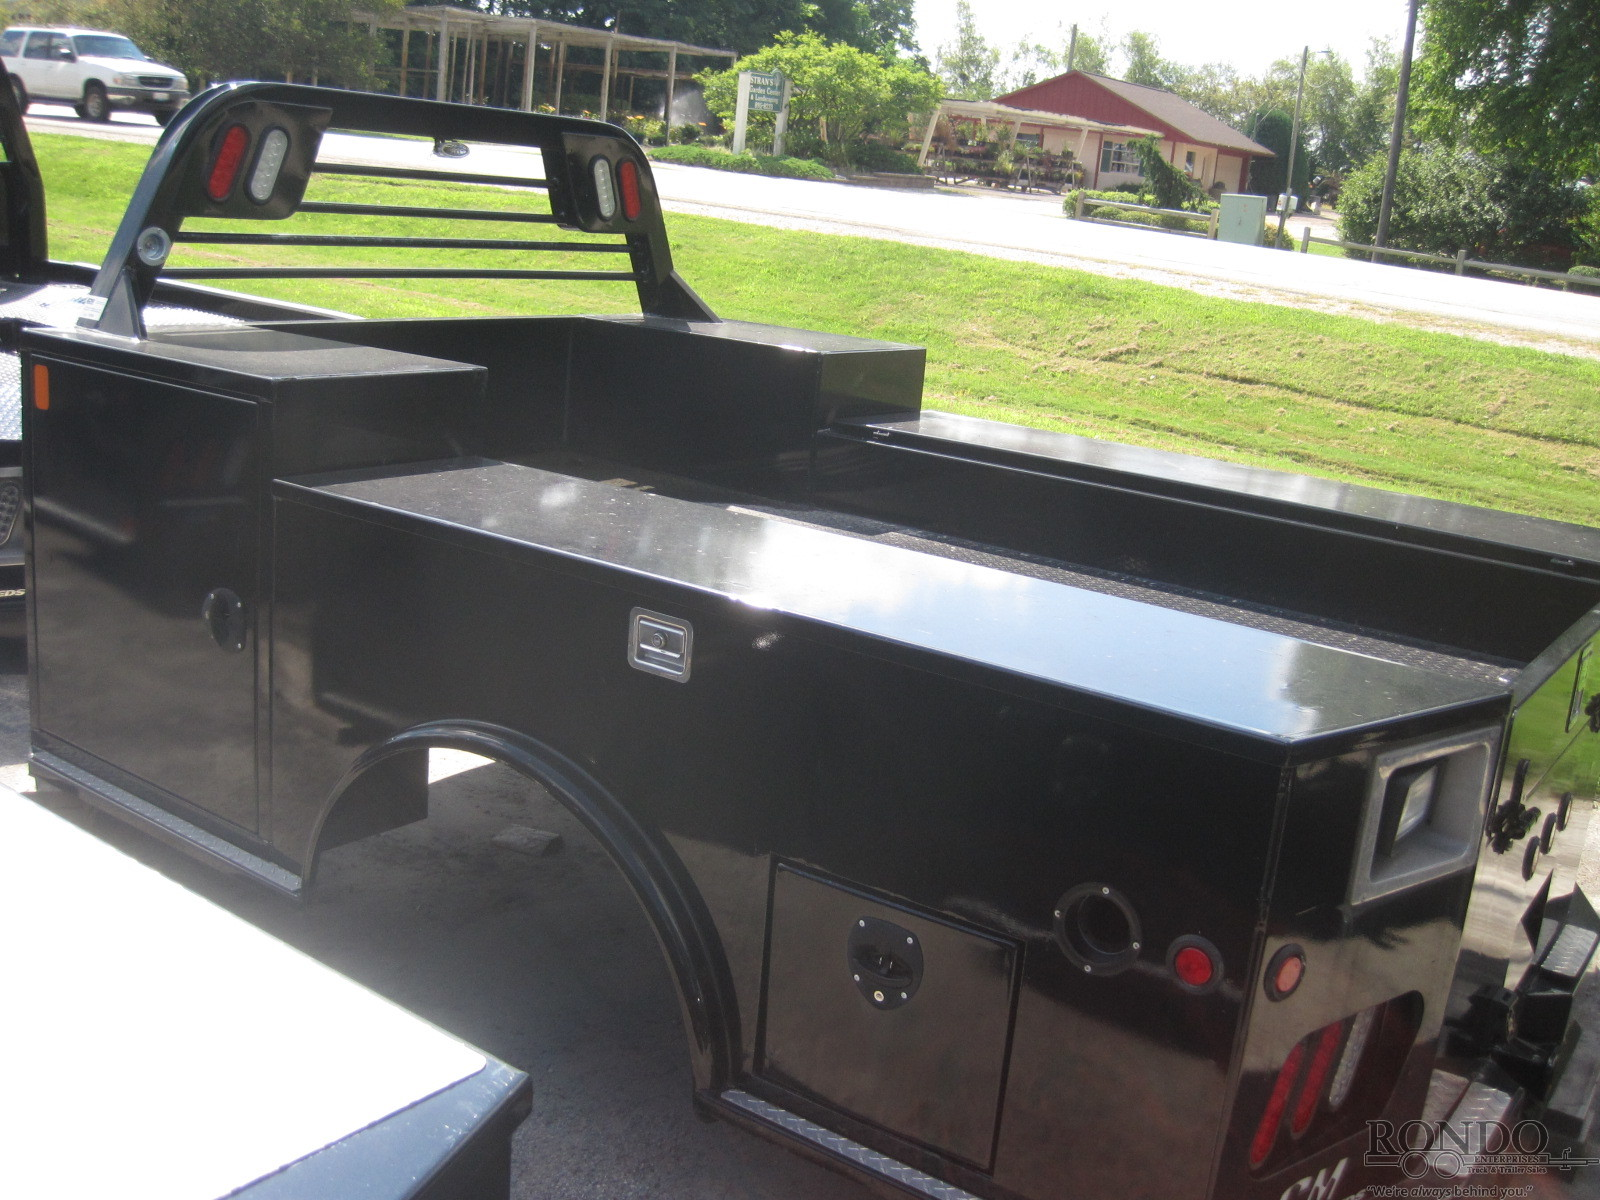 hight resolution of as is cm 9 3 x 90 tm truck bed